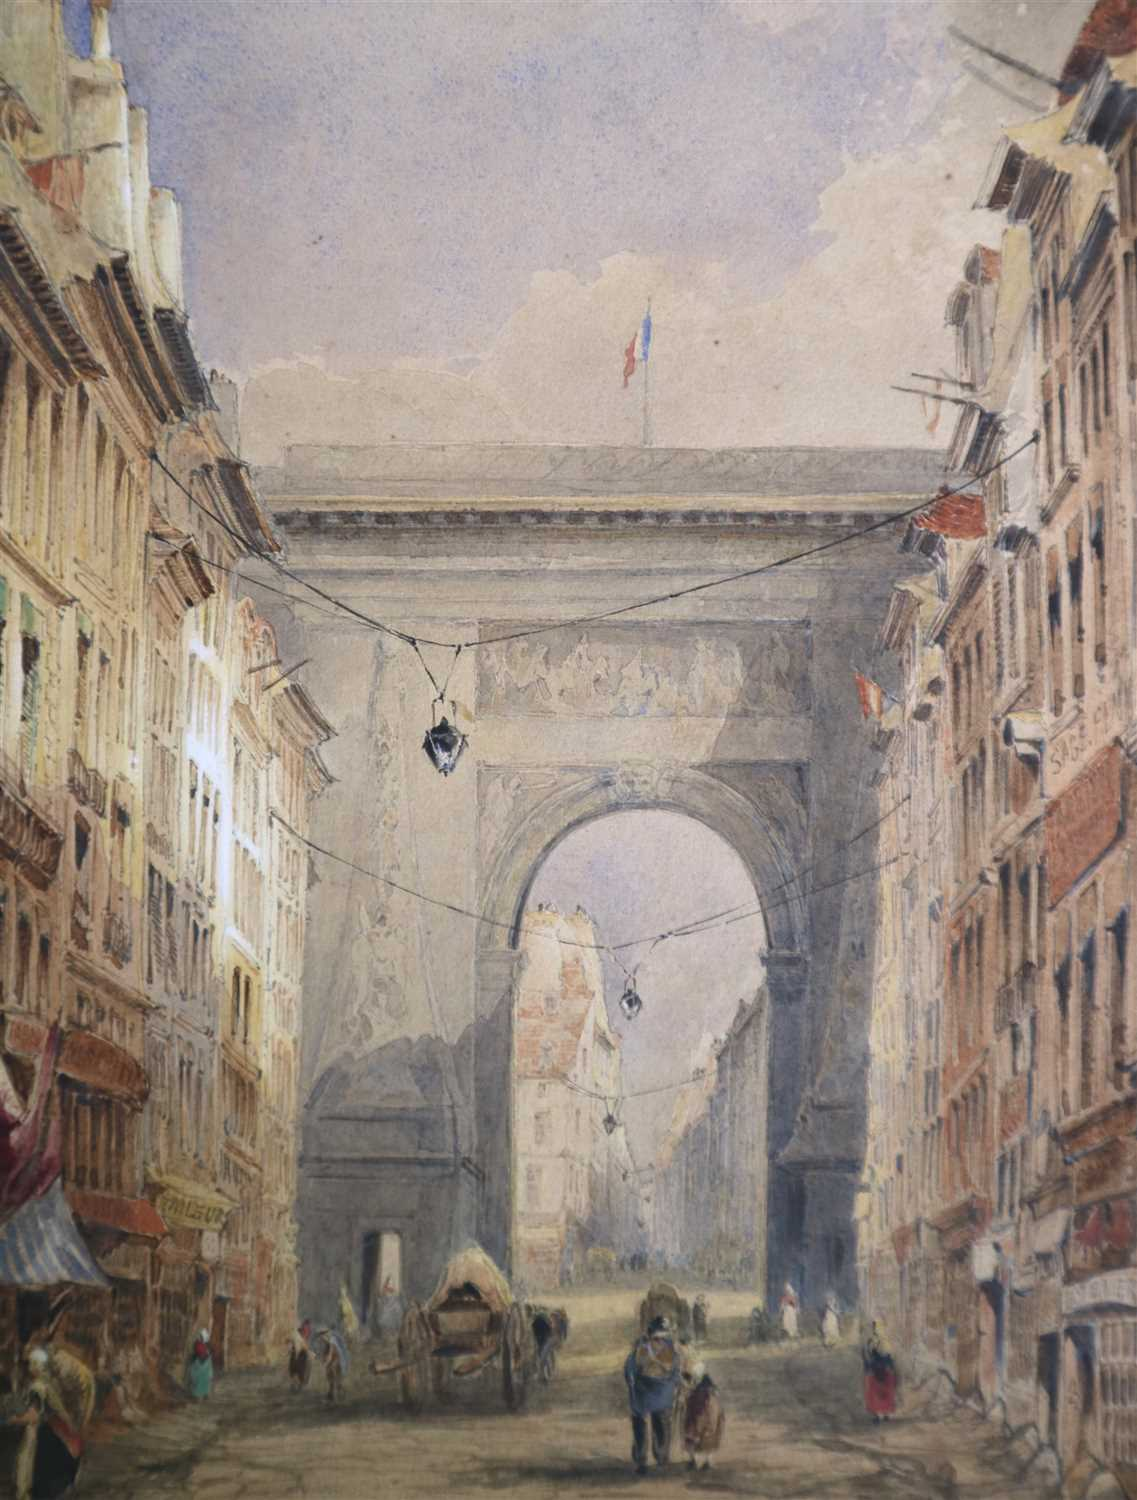 149 - Thomas Shotter Boyes (1803-1874), Porte Saint Denis, Paris